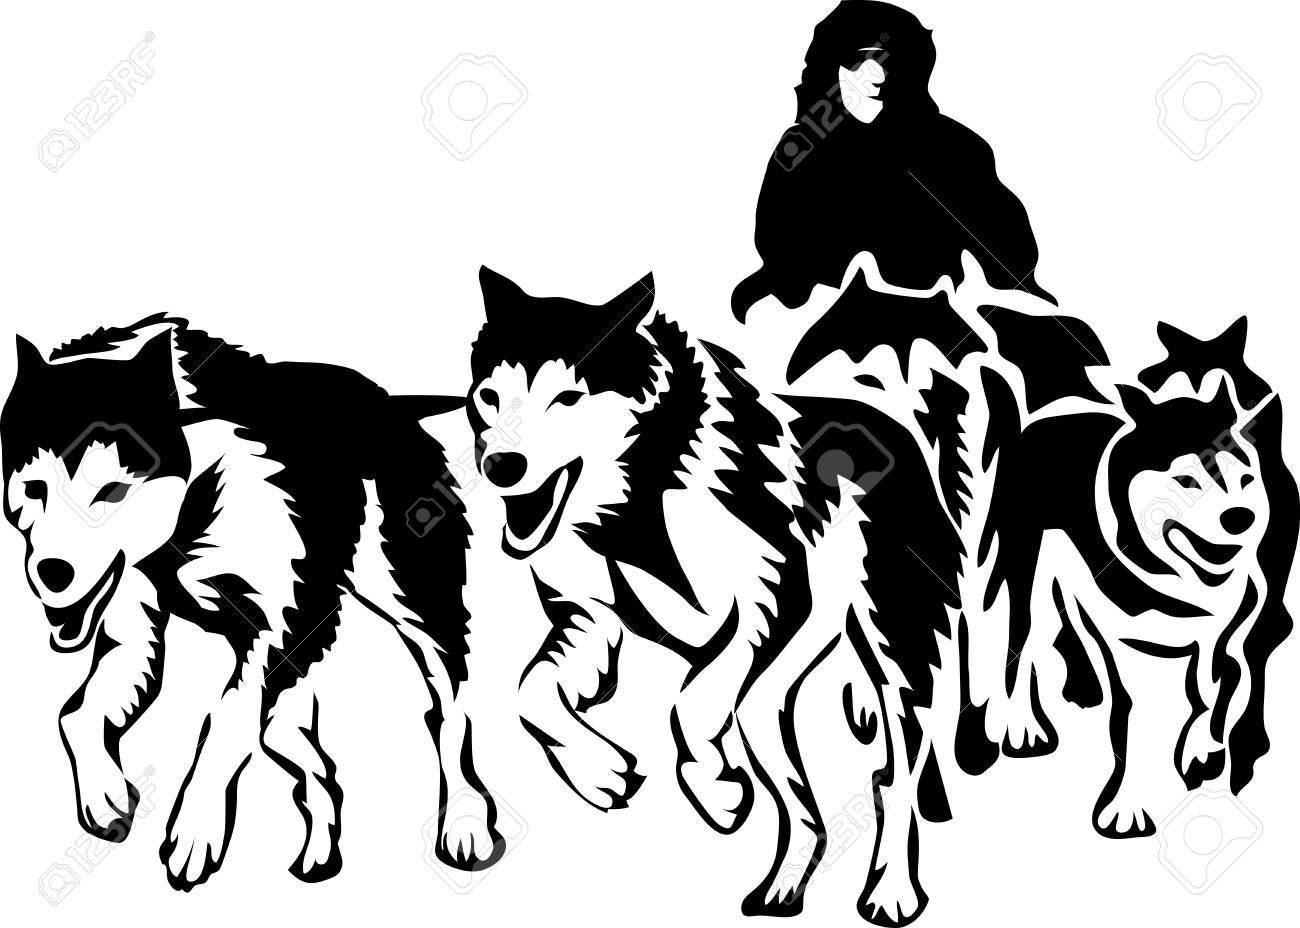 hight resolution of musher with sled dogs stock vector 88393520